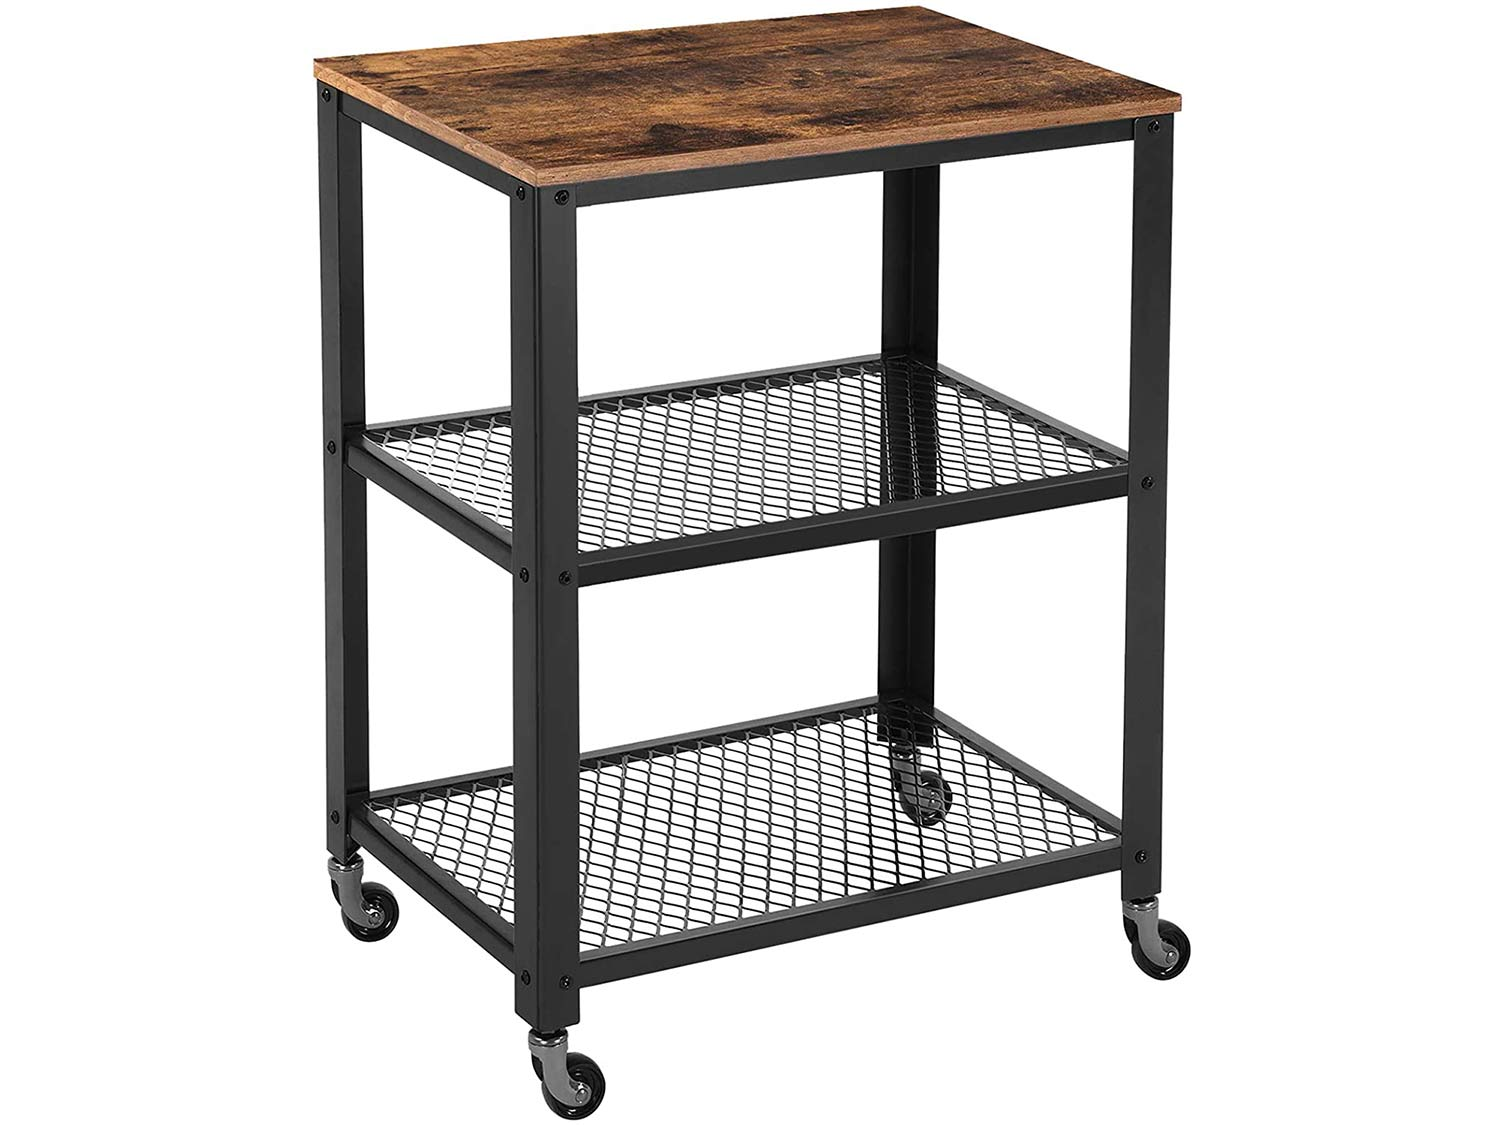 VASAGLE Industrial Serving, 3-Tier Kitchen Utility Cart on Wheels with Storage for Living Room, Wood Look Accent Furniture with Metal Frame , Rustic Brown